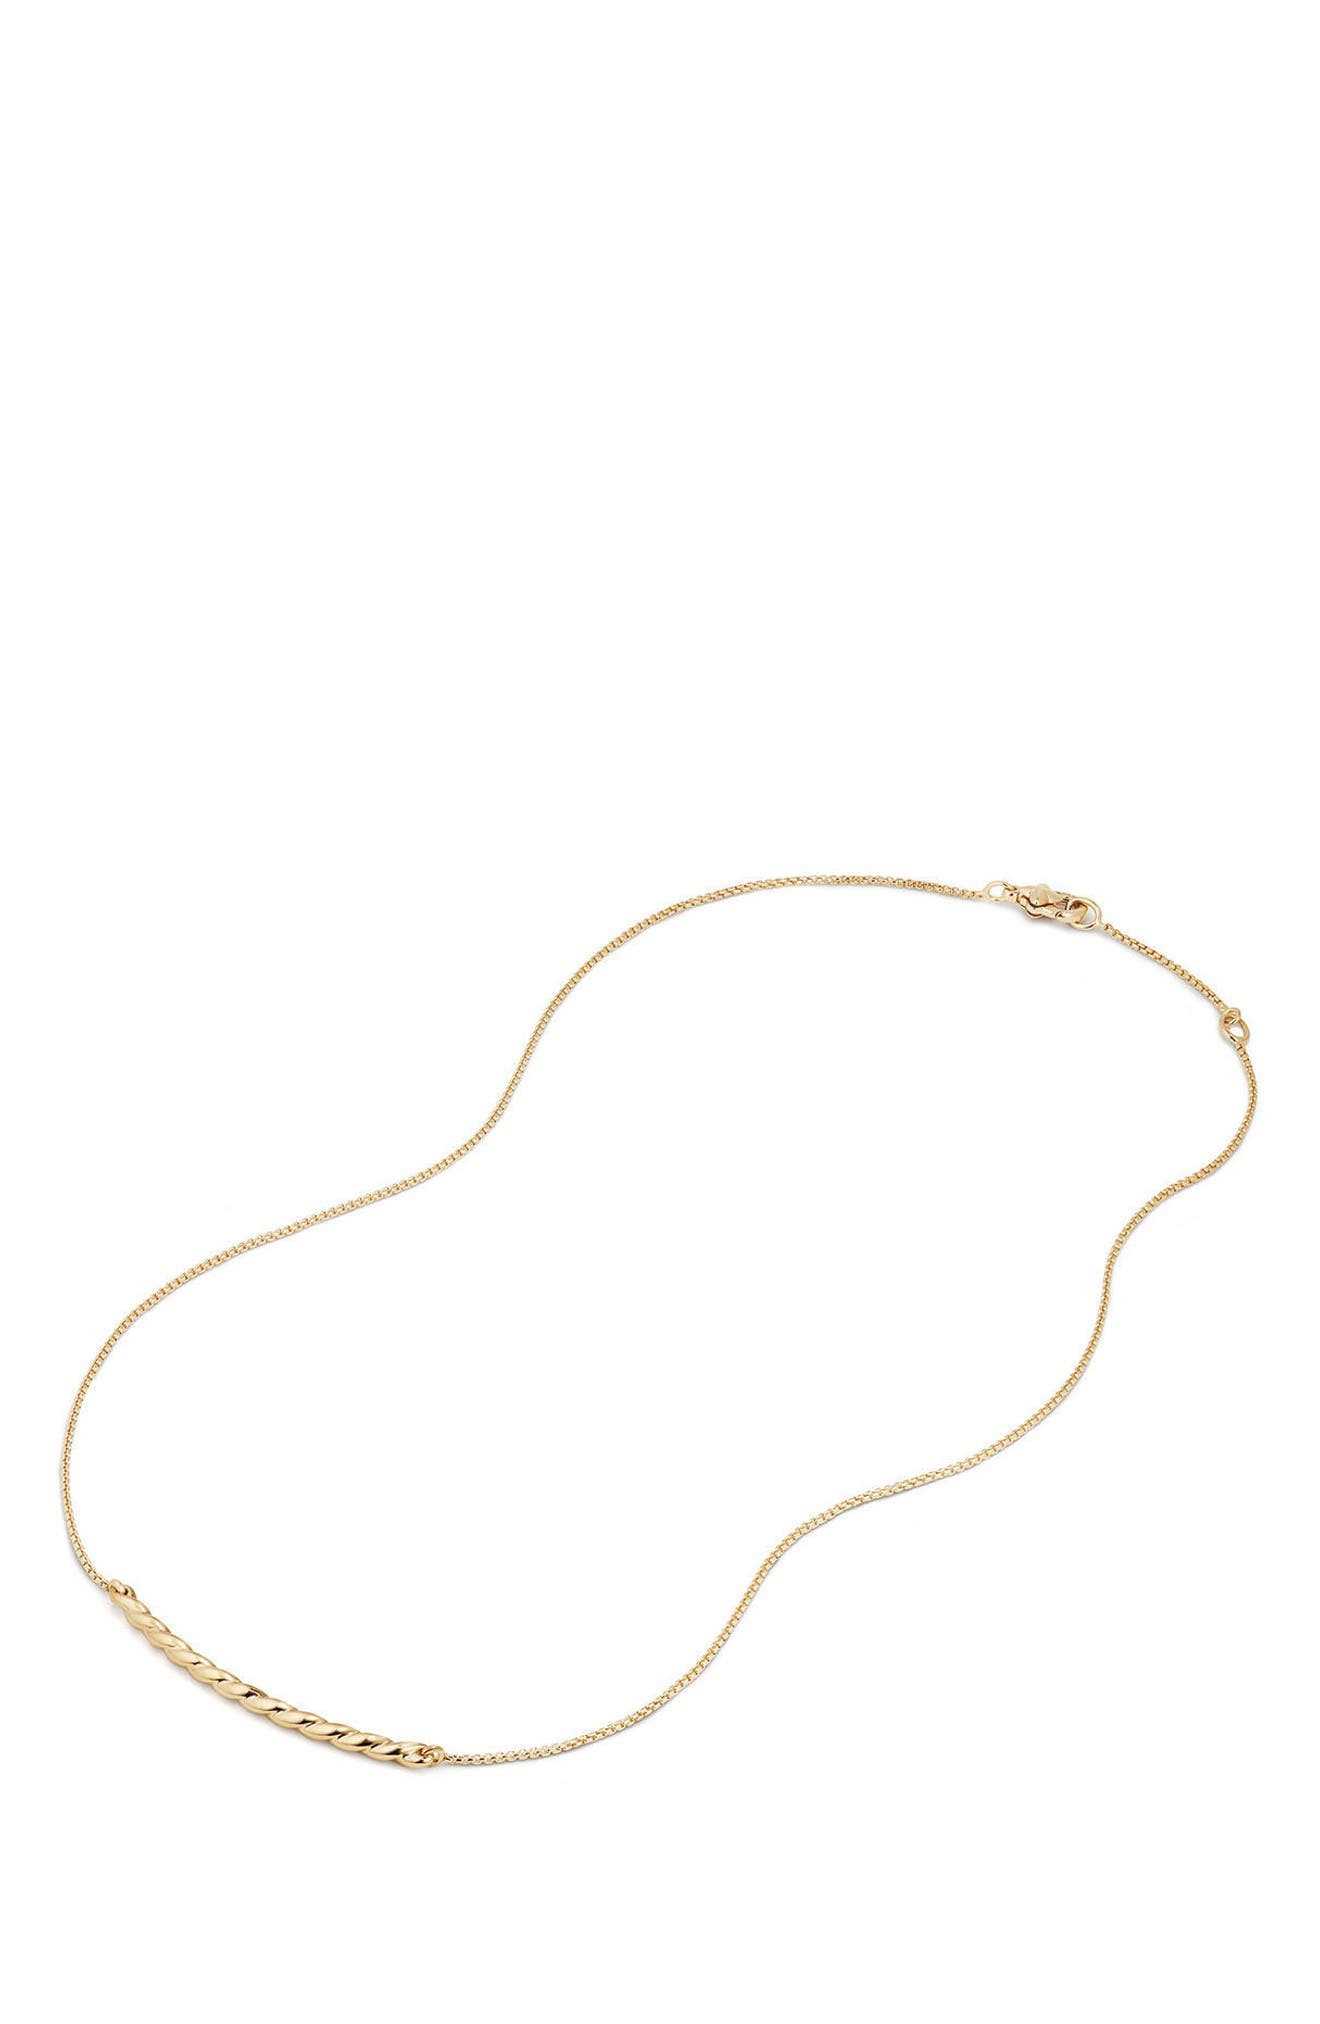 Paveflex Station Necklace in 18K Gold,                             Alternate thumbnail 2, color,                             YELLOW GOLD